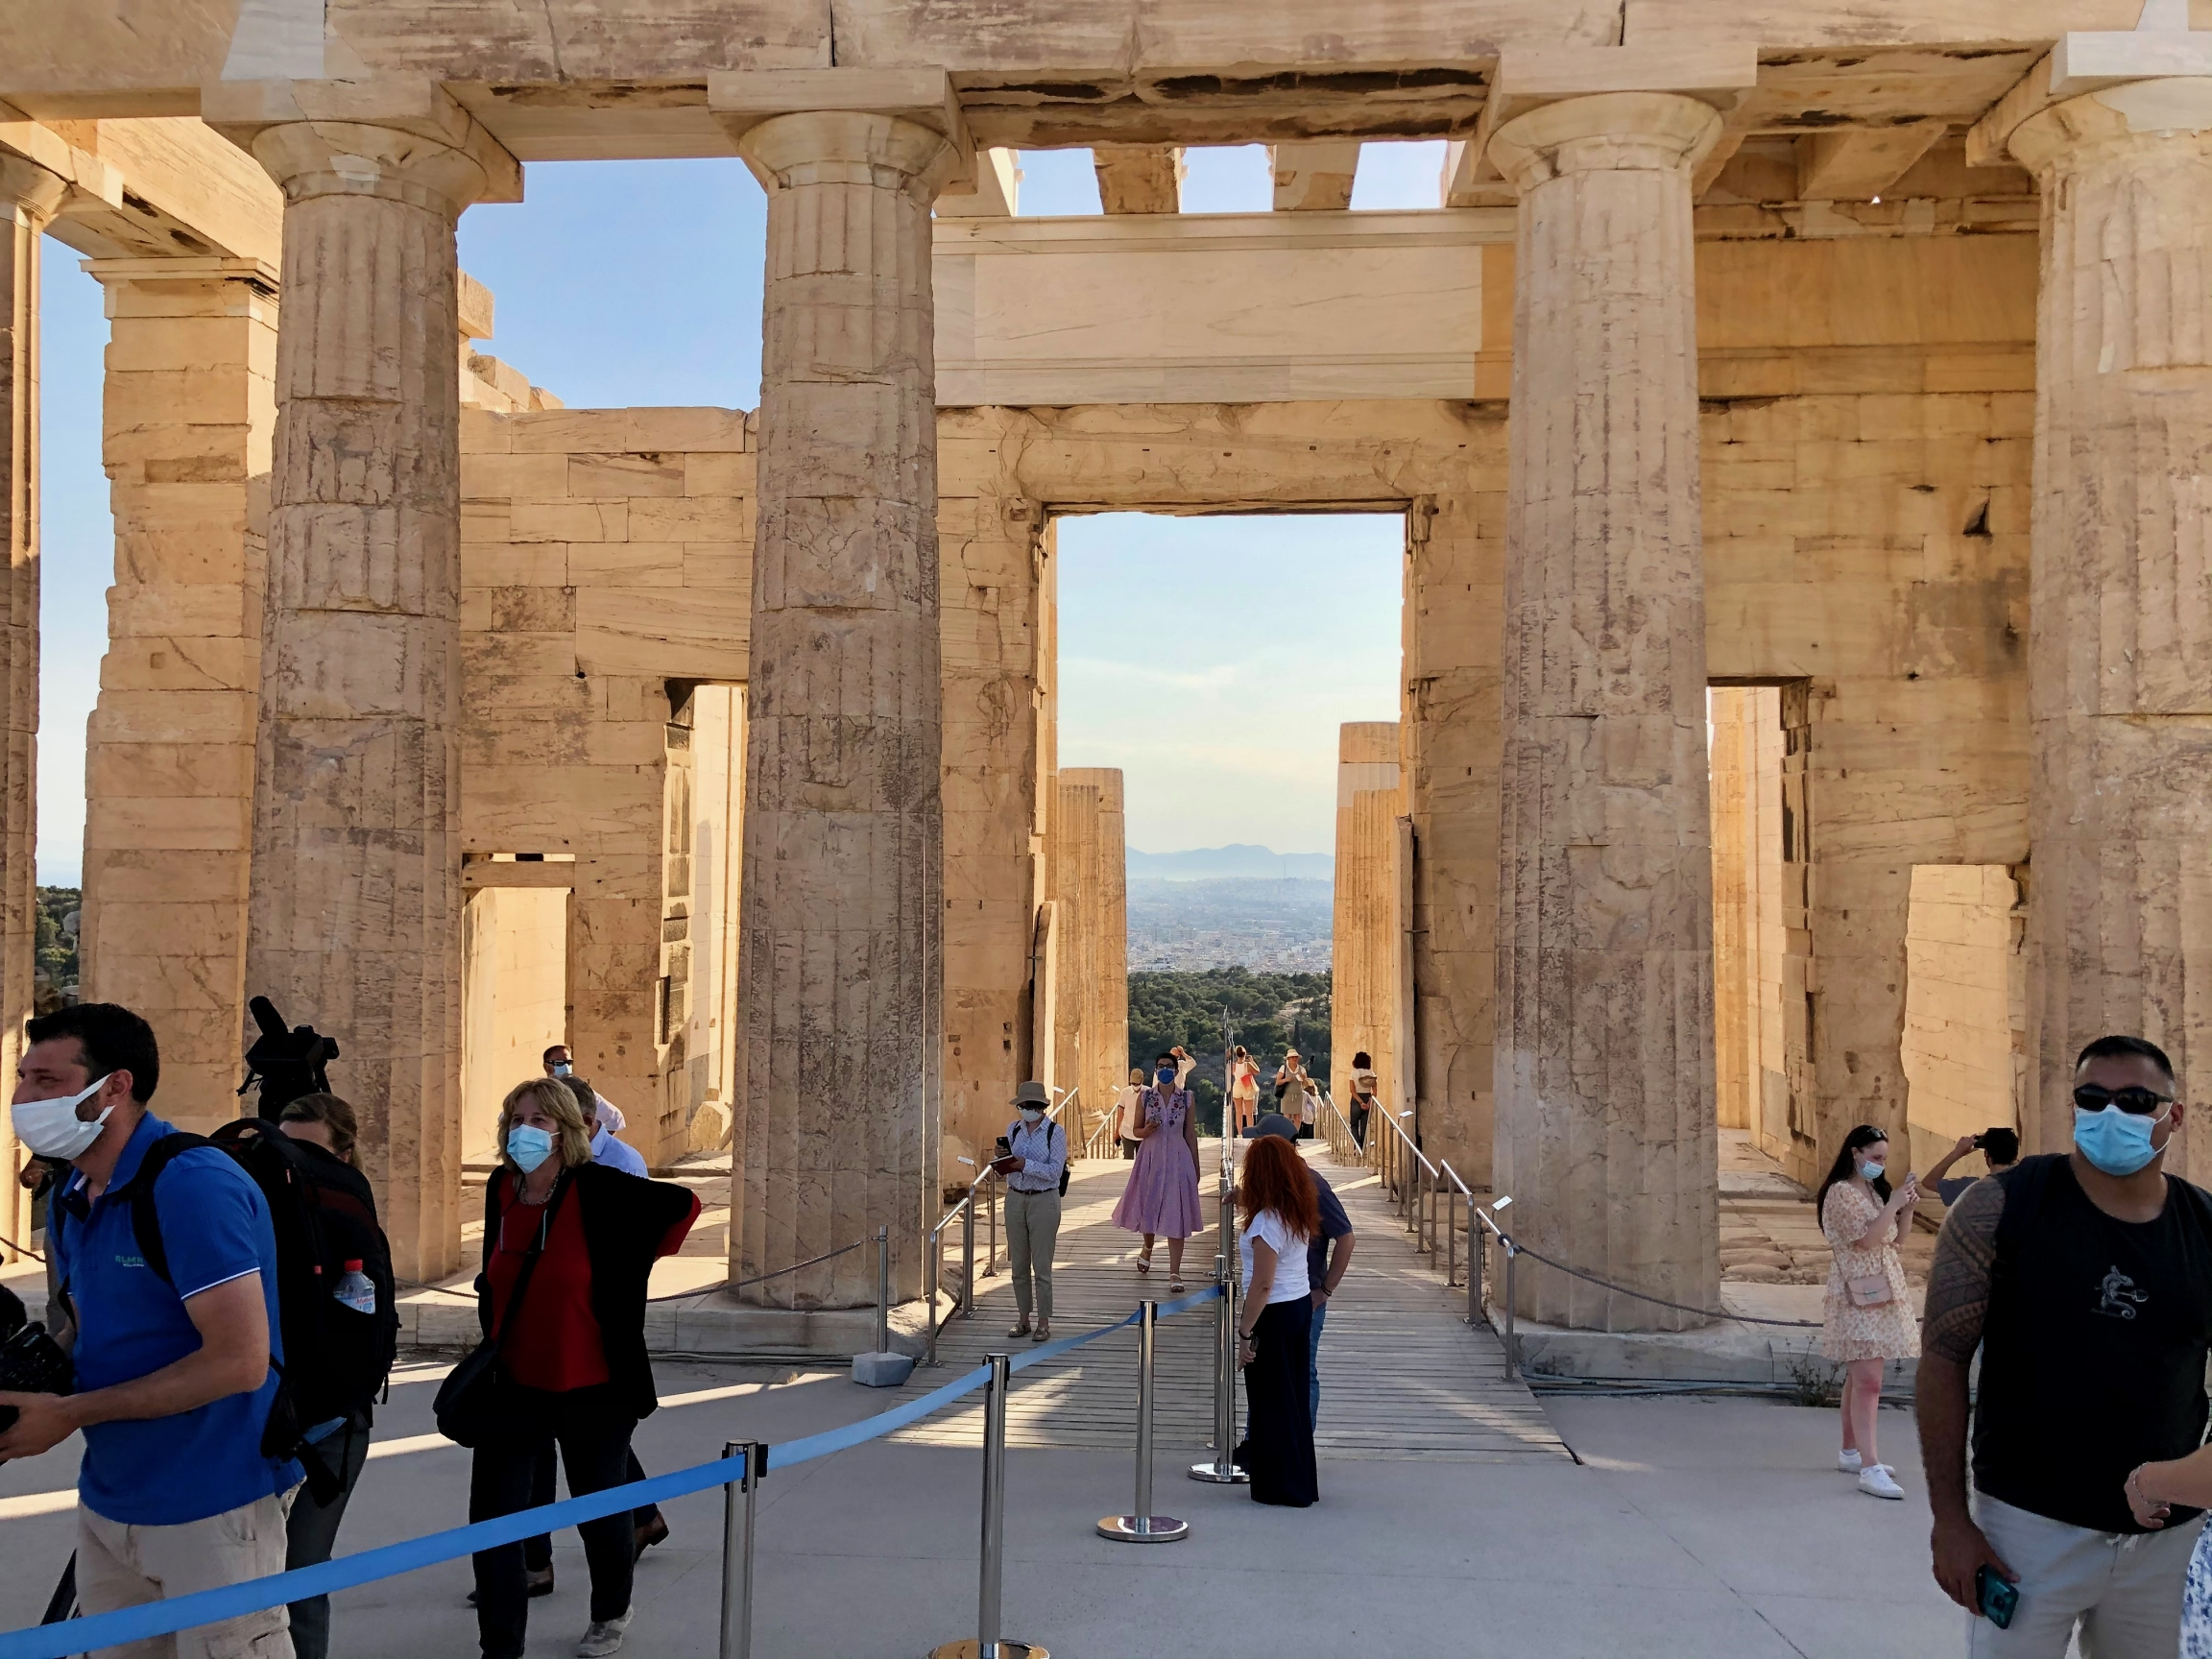 The Acropolis is one of the country's most treasured and often-visited archeological sites, welcoming more than 3 million visitors annuallyin prepandemic times.